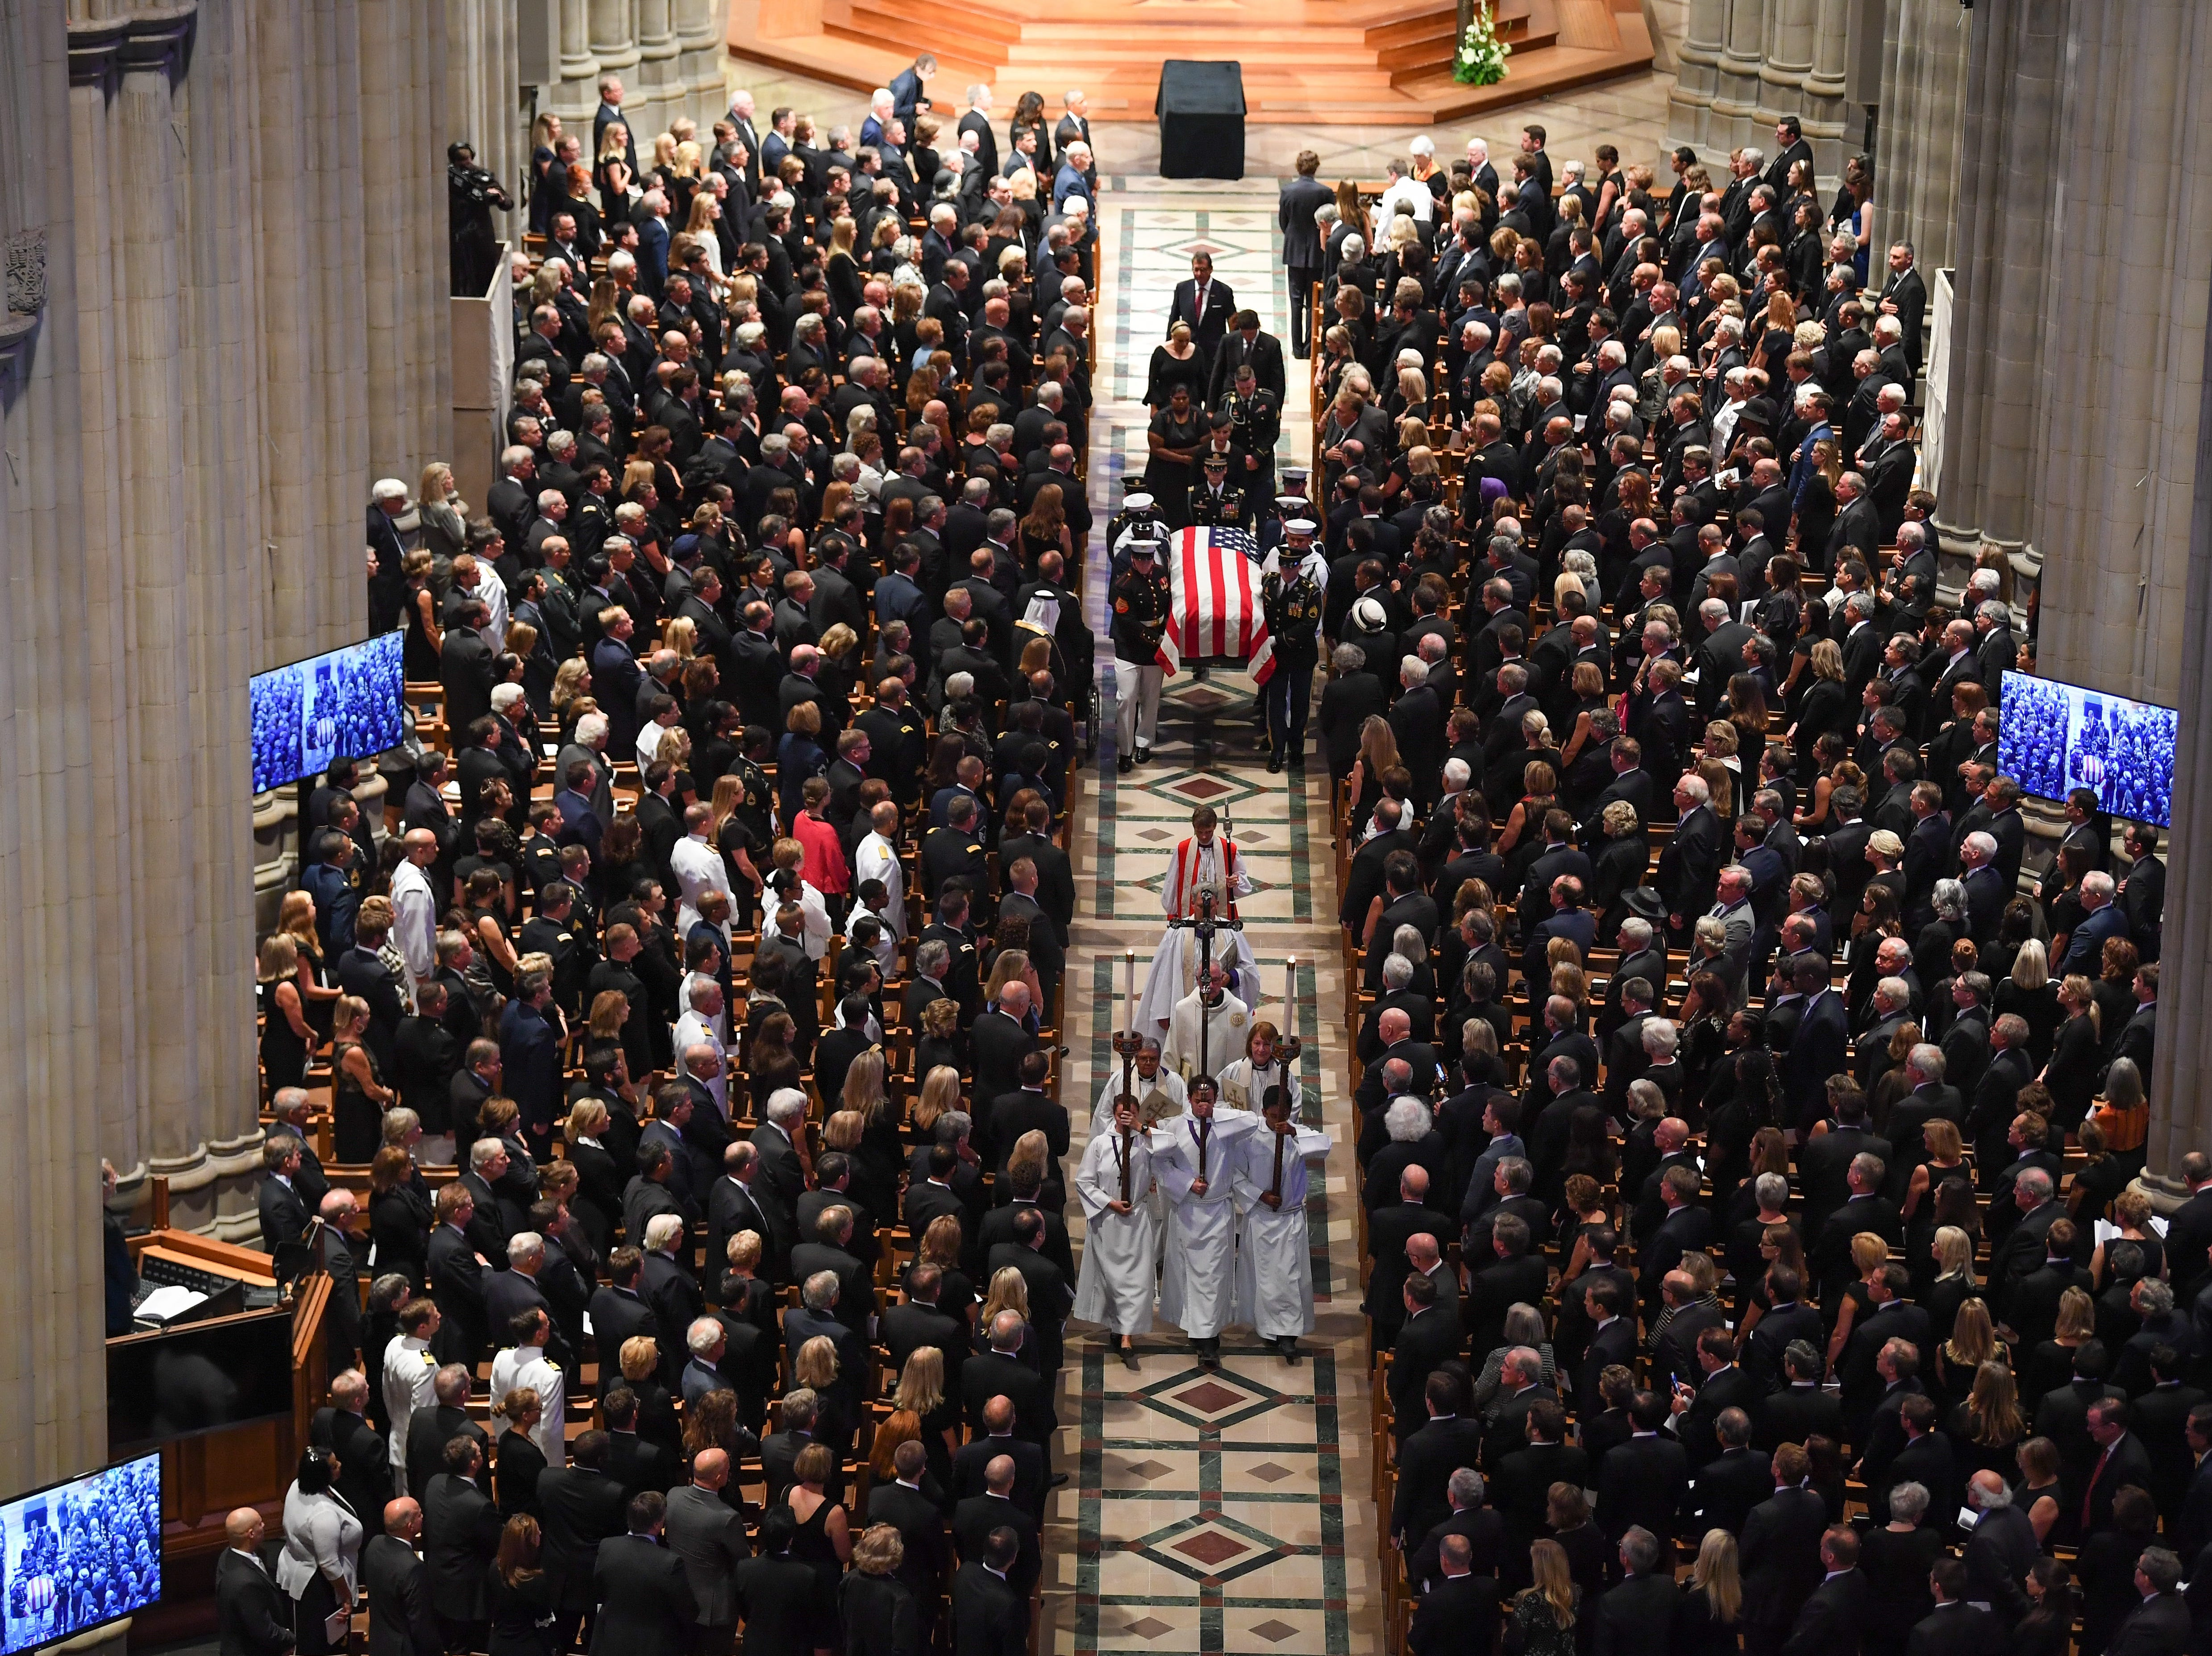 John McCain's widow Cindy and family members follow his casket at the conclusion of his memorial service at the National Cathedral in Washington, DC.